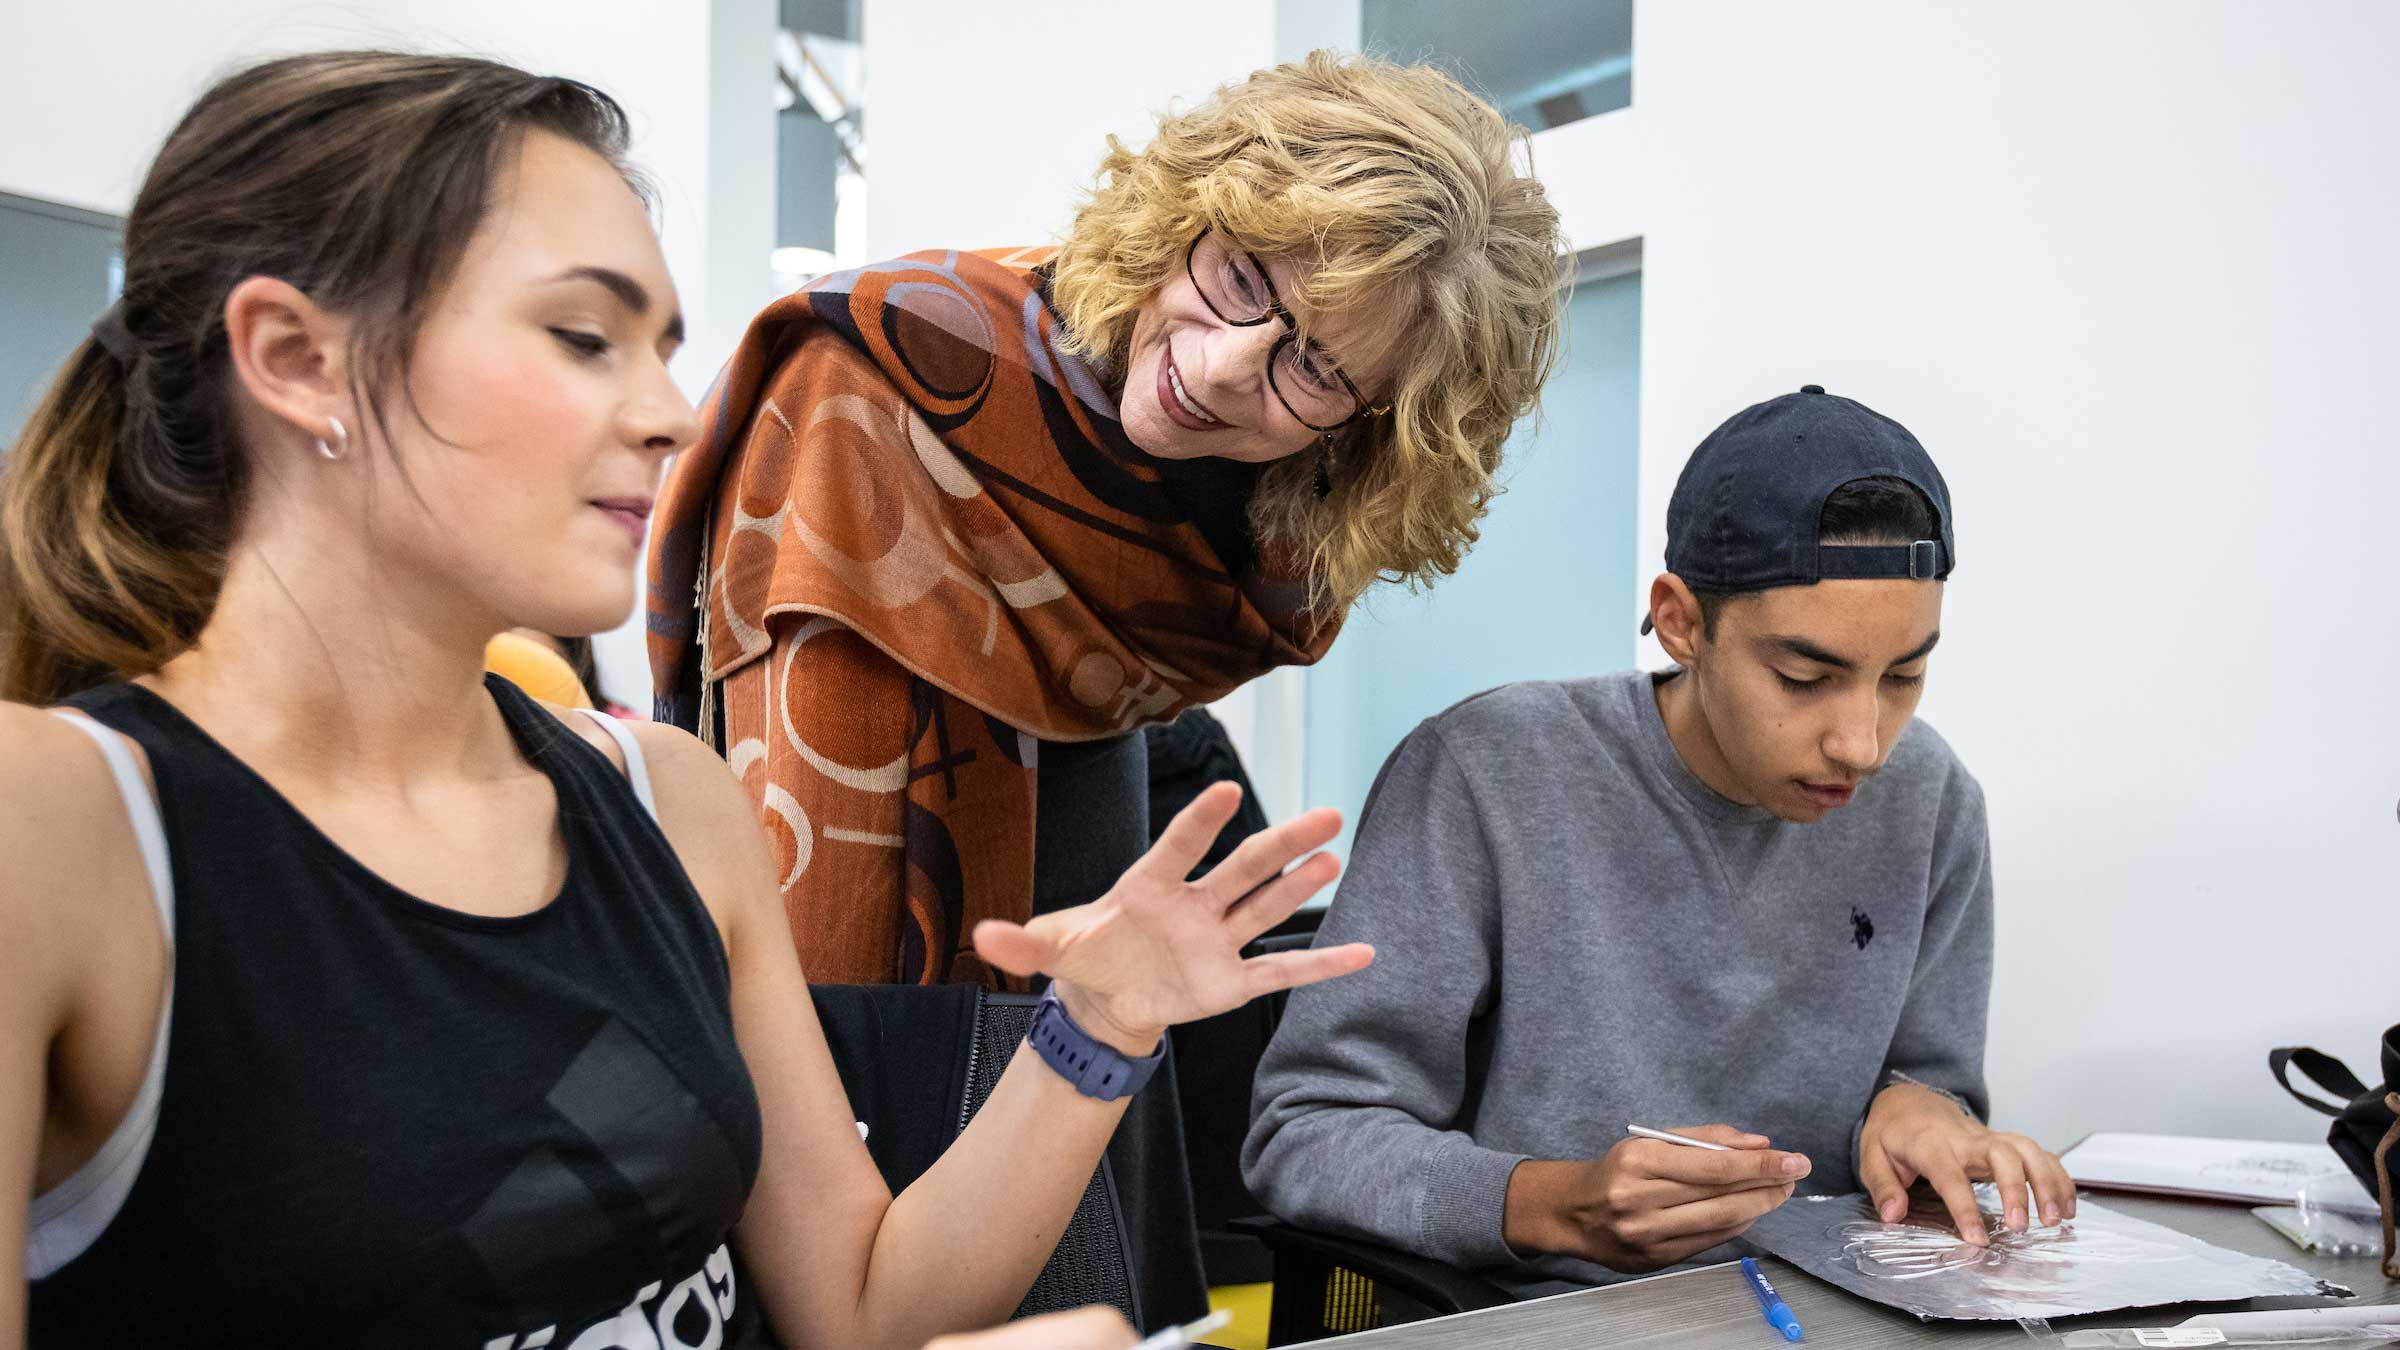 Regents Professor Sally Kitch with students in her Humanities Lab